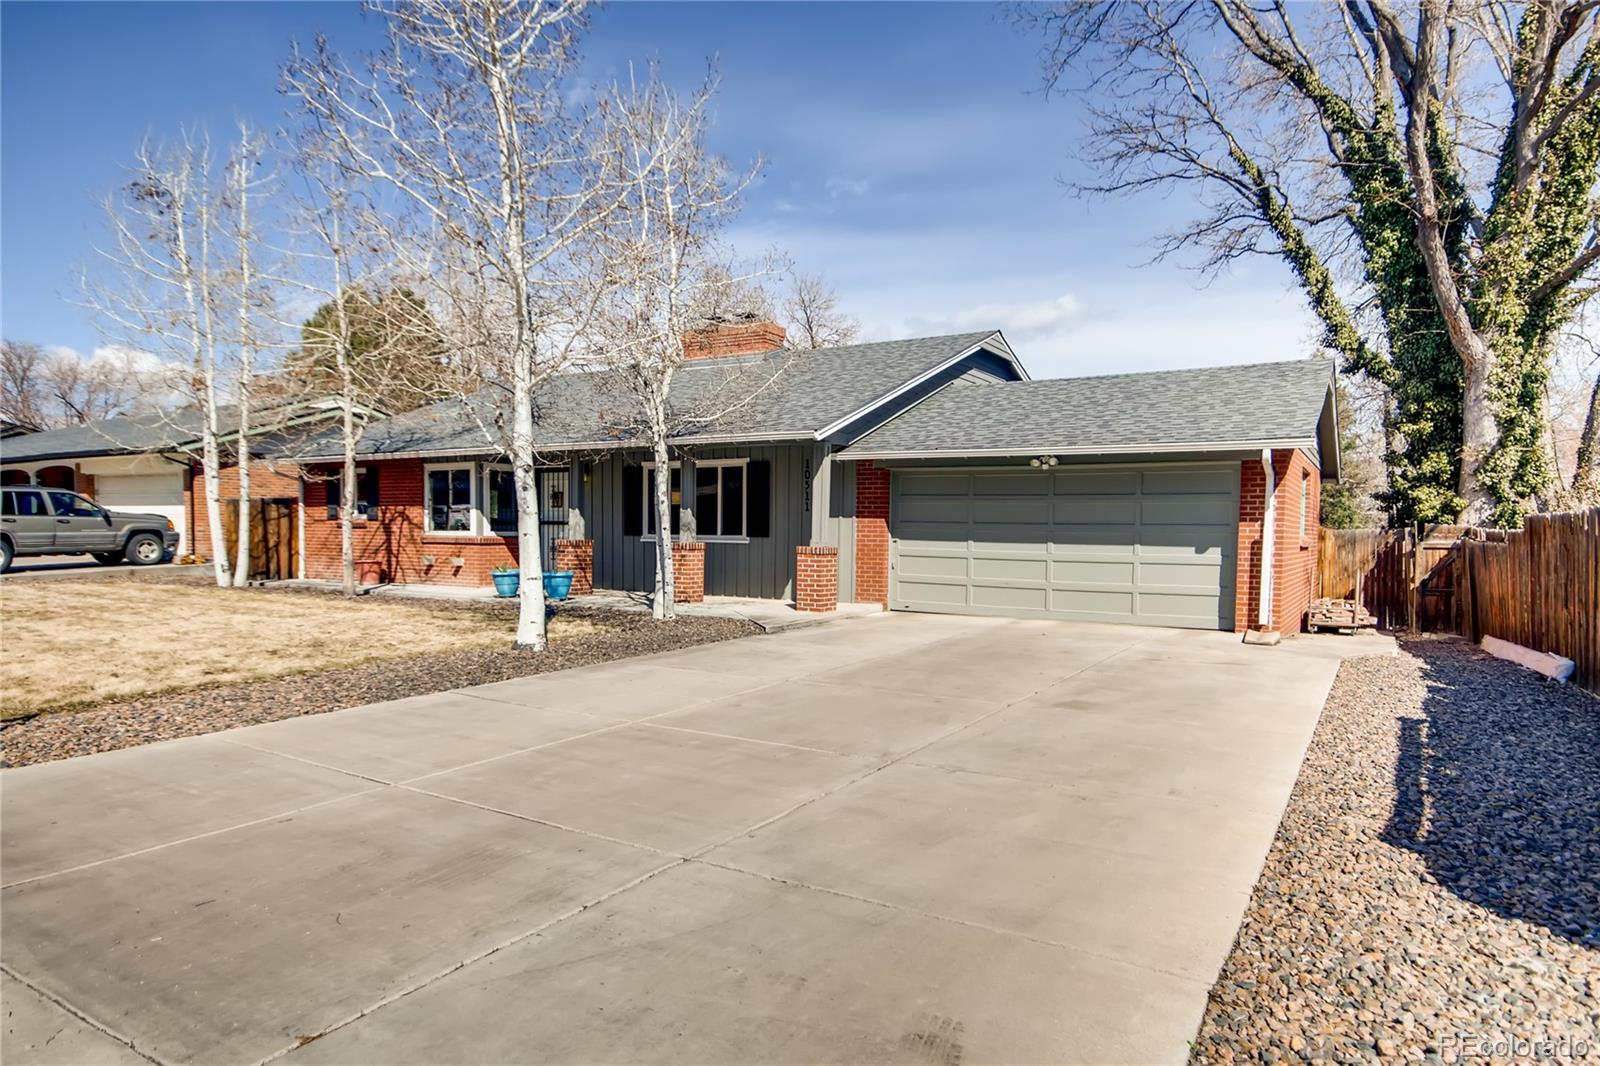 MLS# 9197299 - 3 - 10511 W 22nd Place, Lakewood, CO 80215